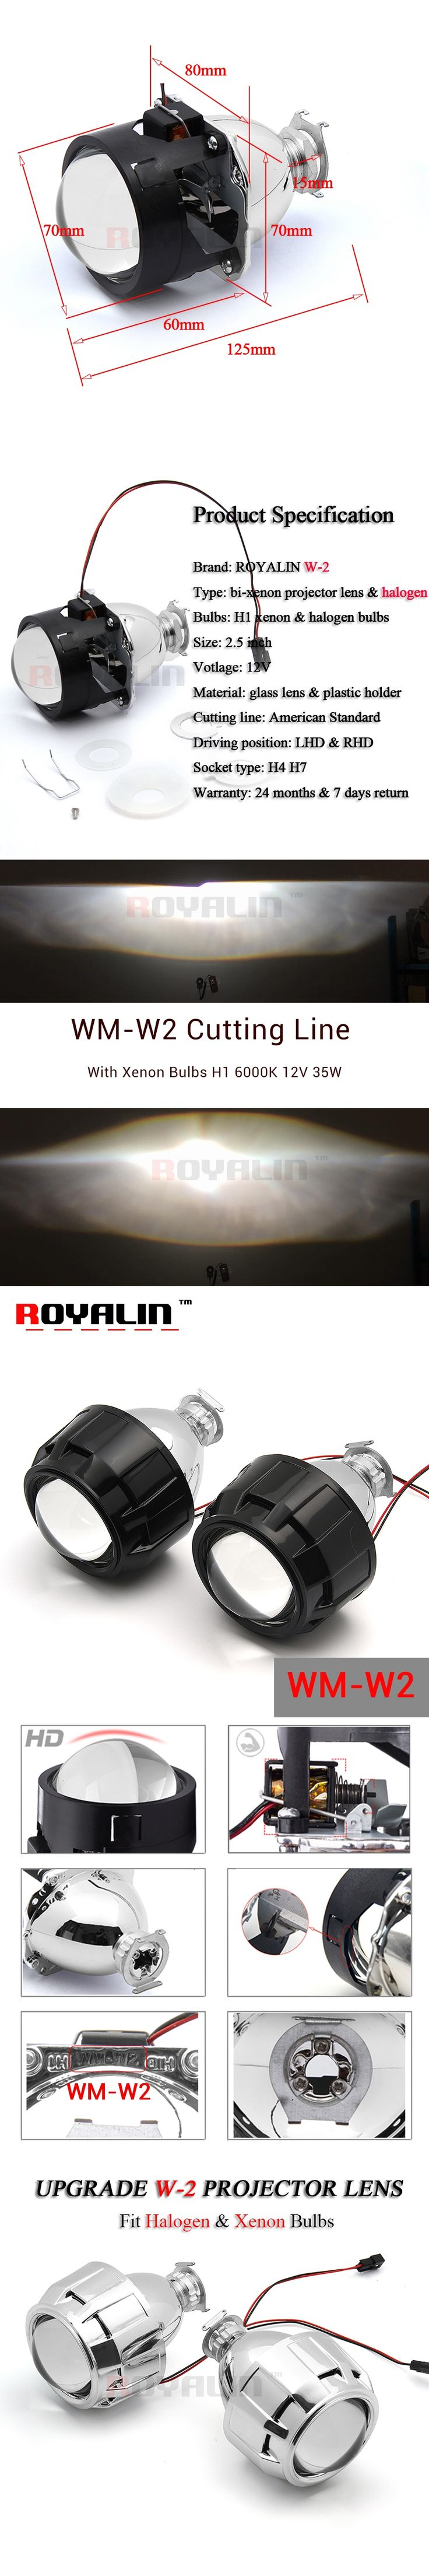 Royalin Wm 2 Styling Car Bi Xenon 5 Projector Lens Lhd Rhd